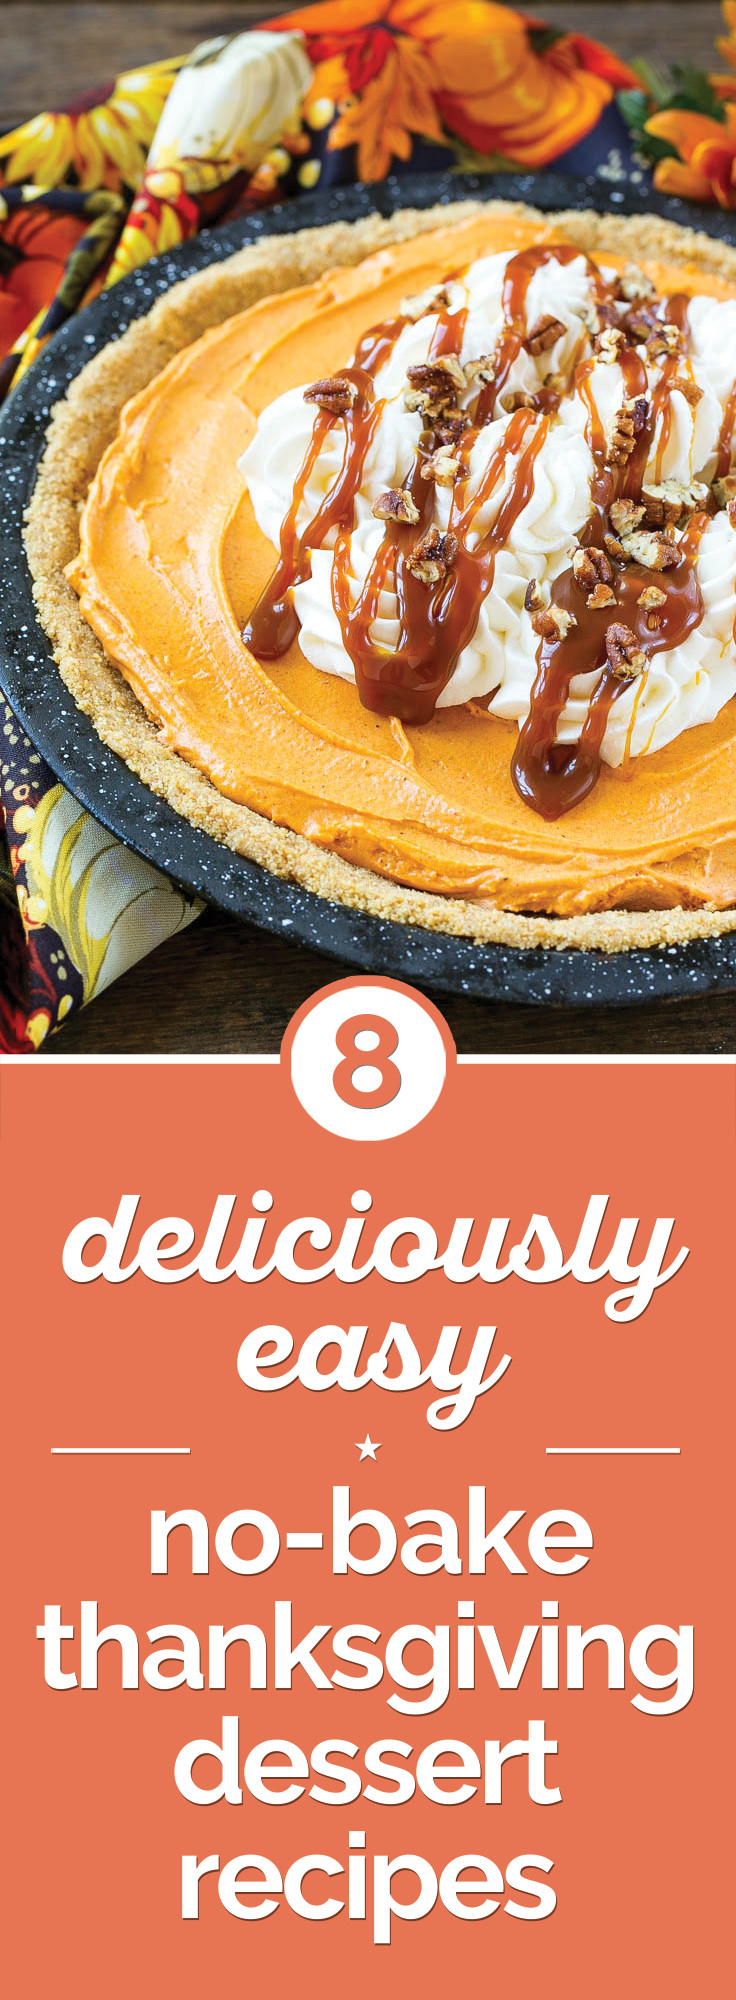 Easy Thanksgiving Desserts No Baking  8 Easy No Bake Thanksgiving Desserts thegoodstuff